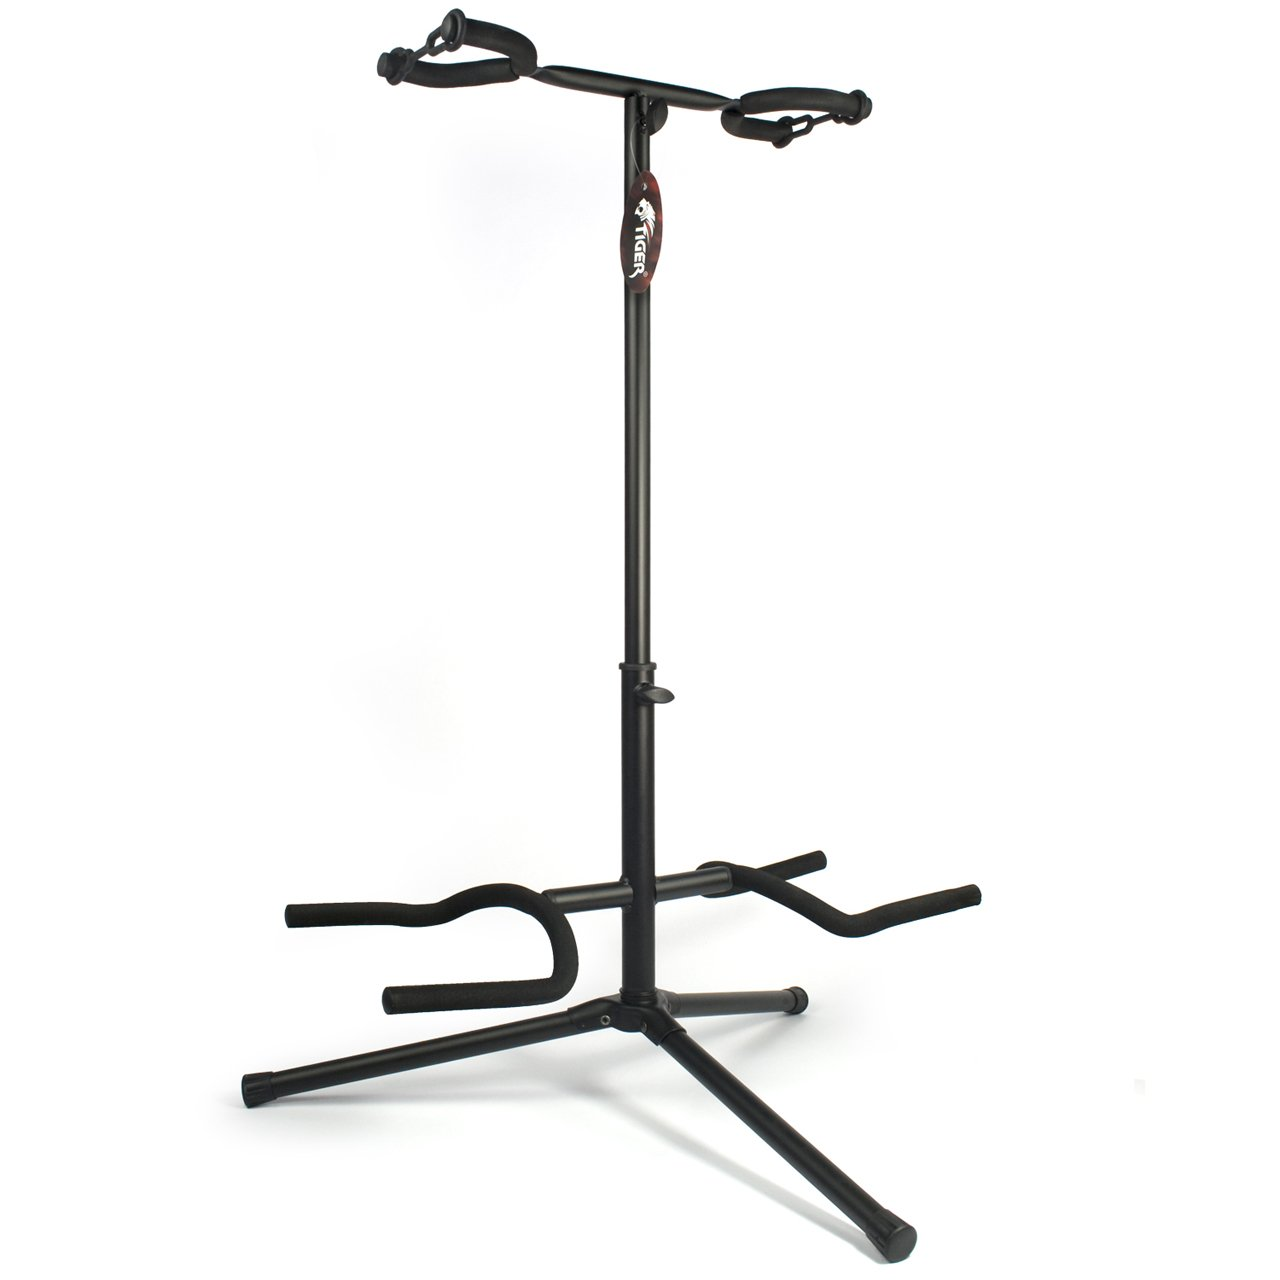 Tiger universel pour guitare Stands